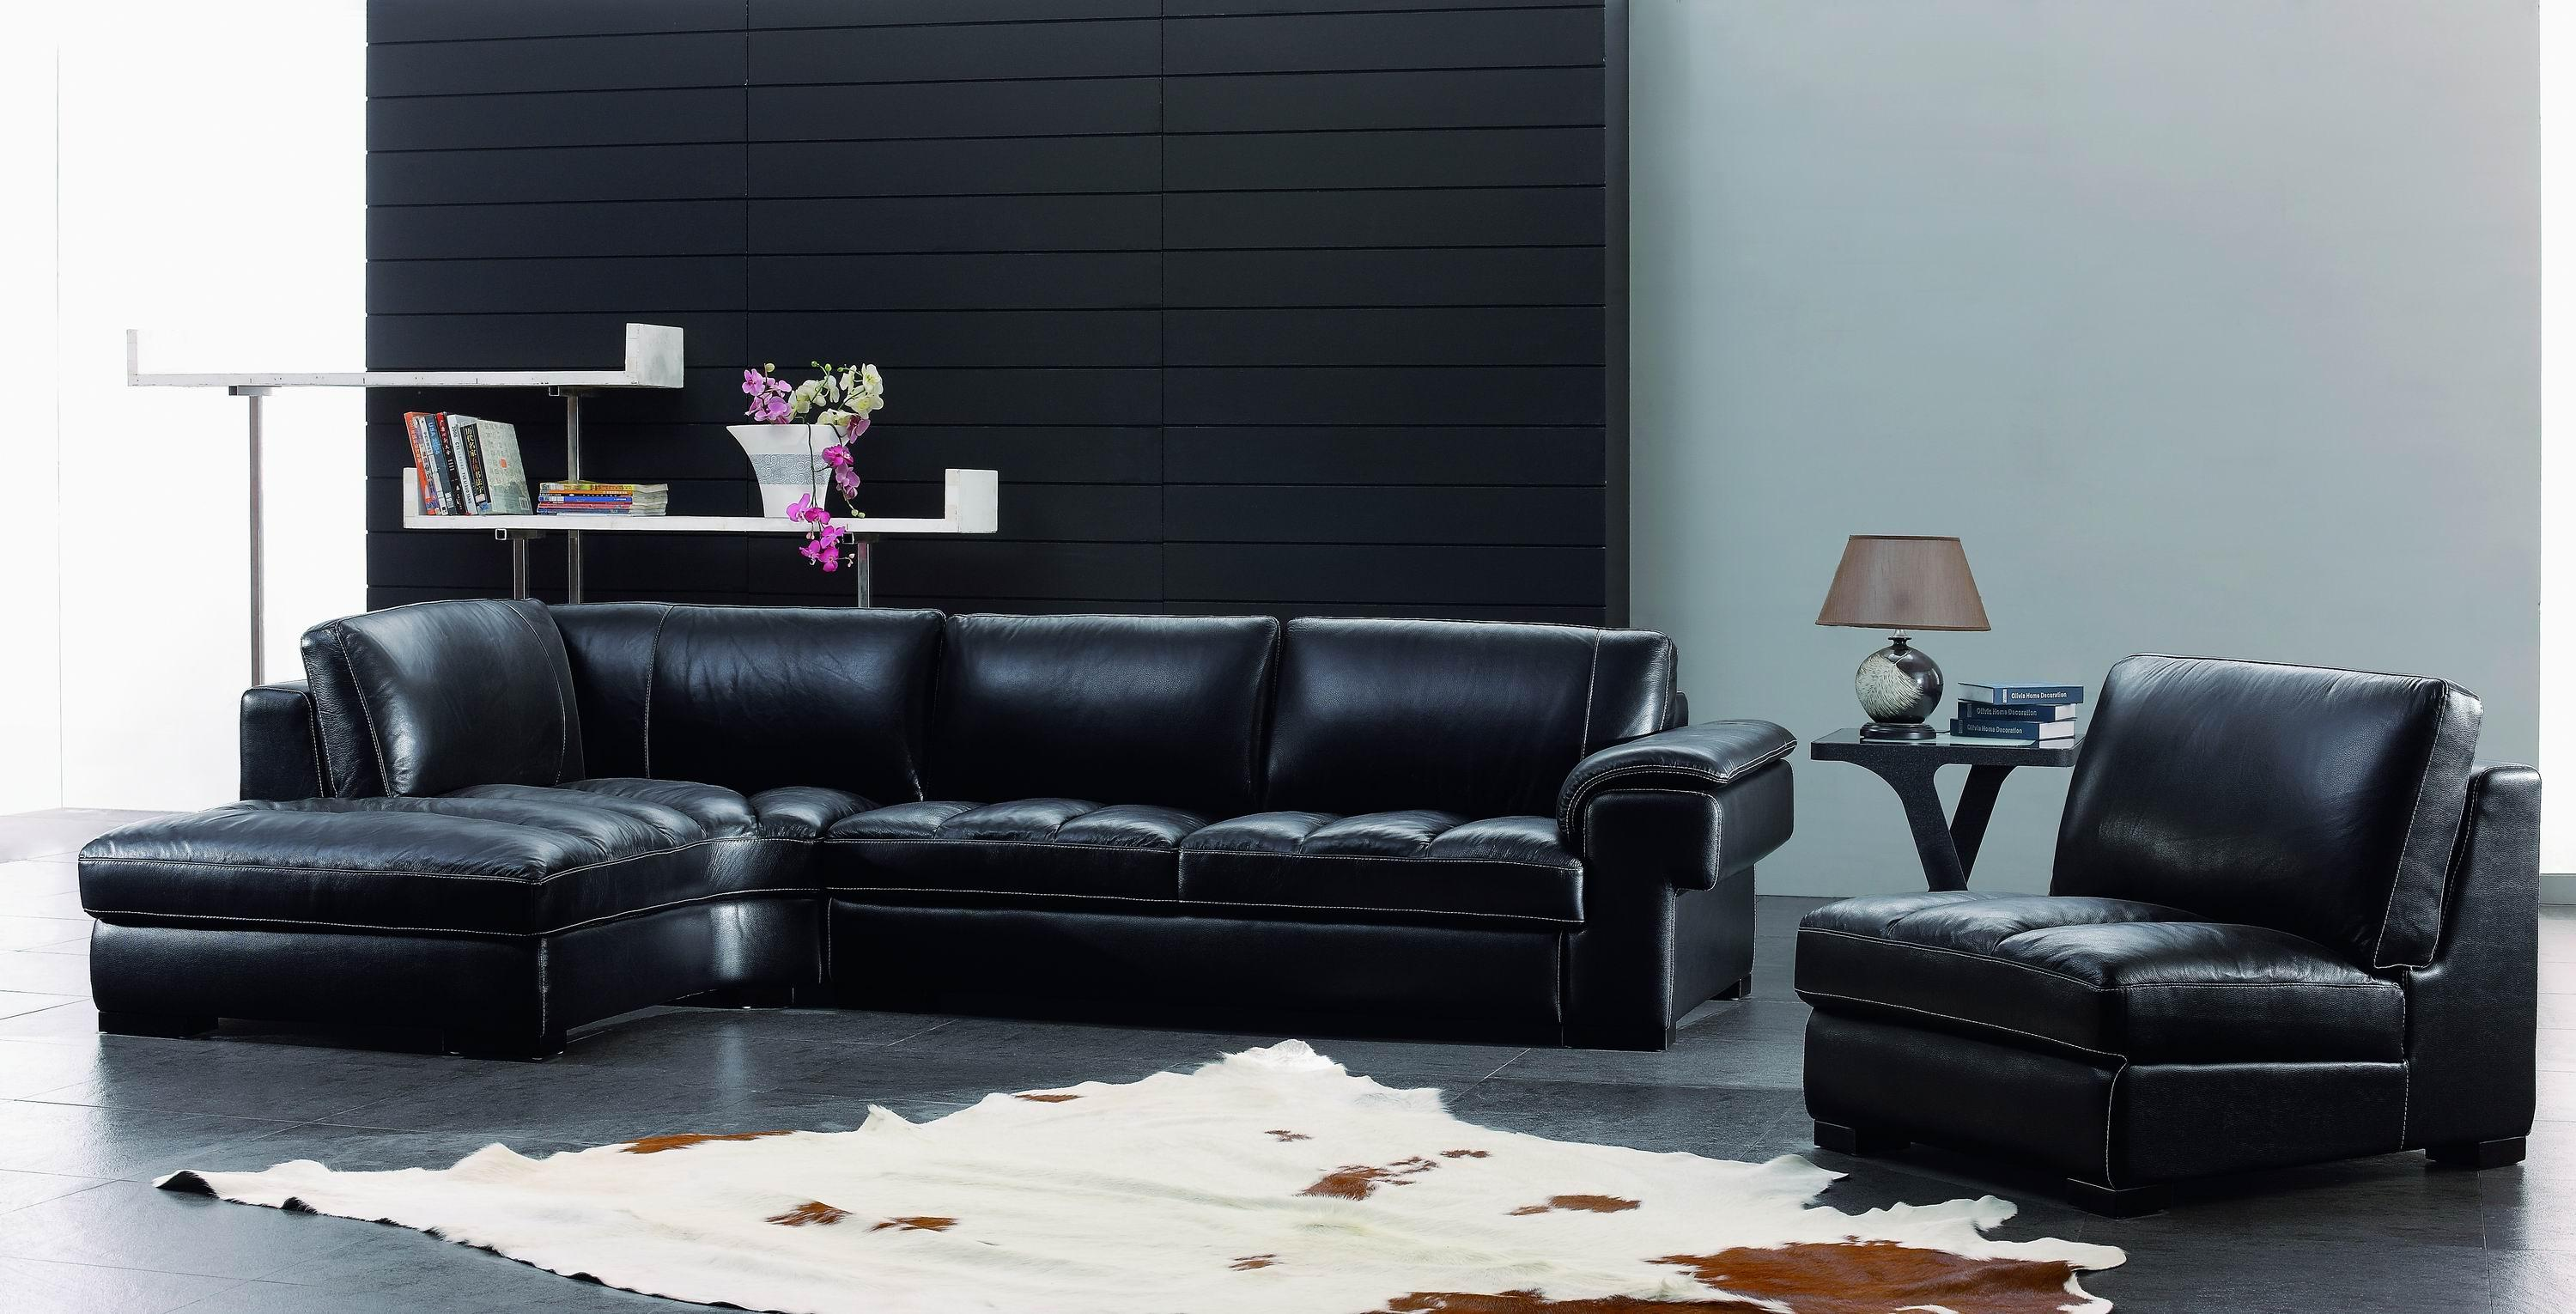 25 Black and White Glamour Decor Inspirations 24